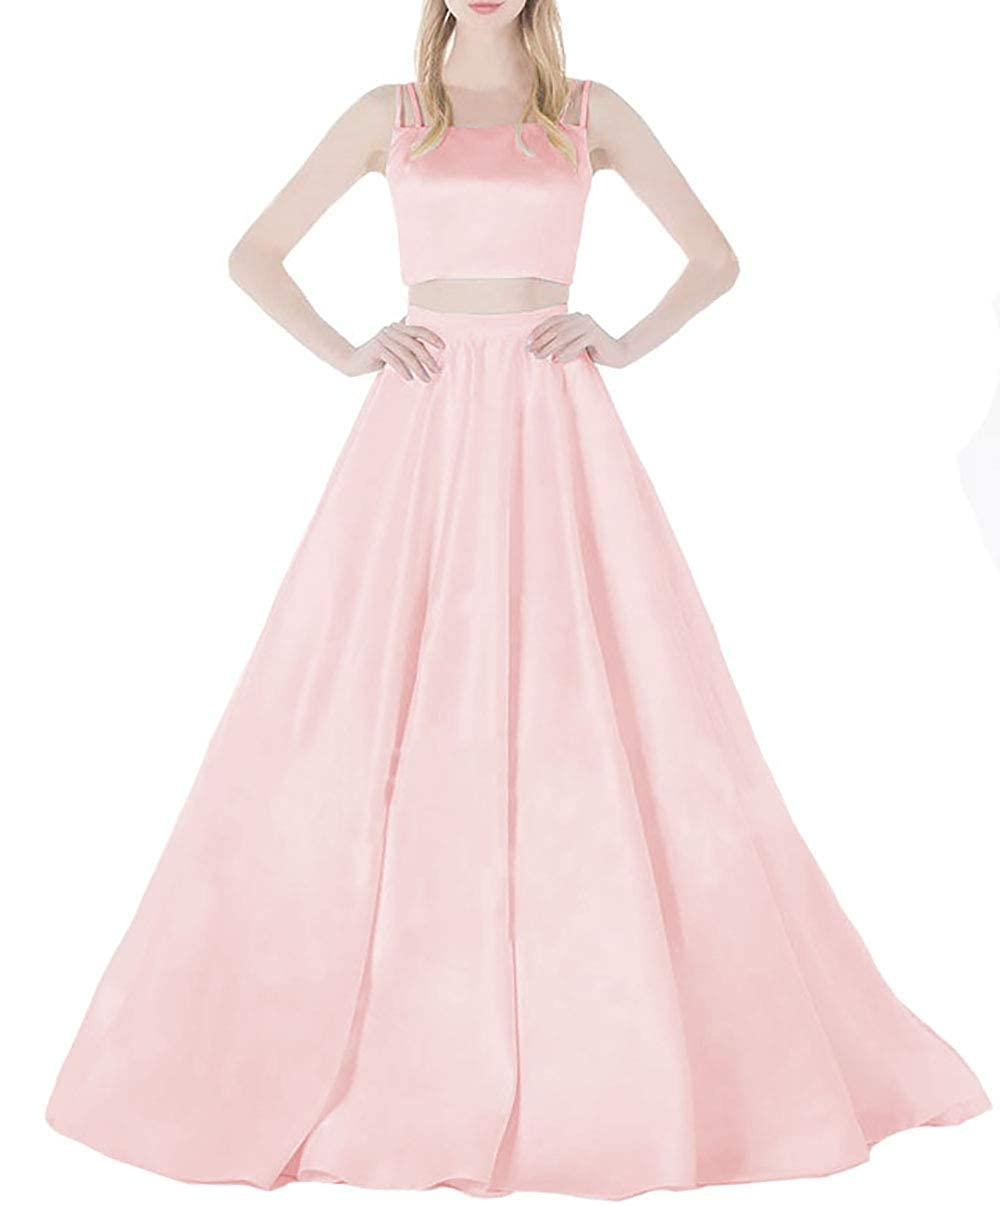 Pink IVYPRECIOUS 2 Pieces Wedding Dresses A Line Ball Gowns Satin Long Dresses for Bridal